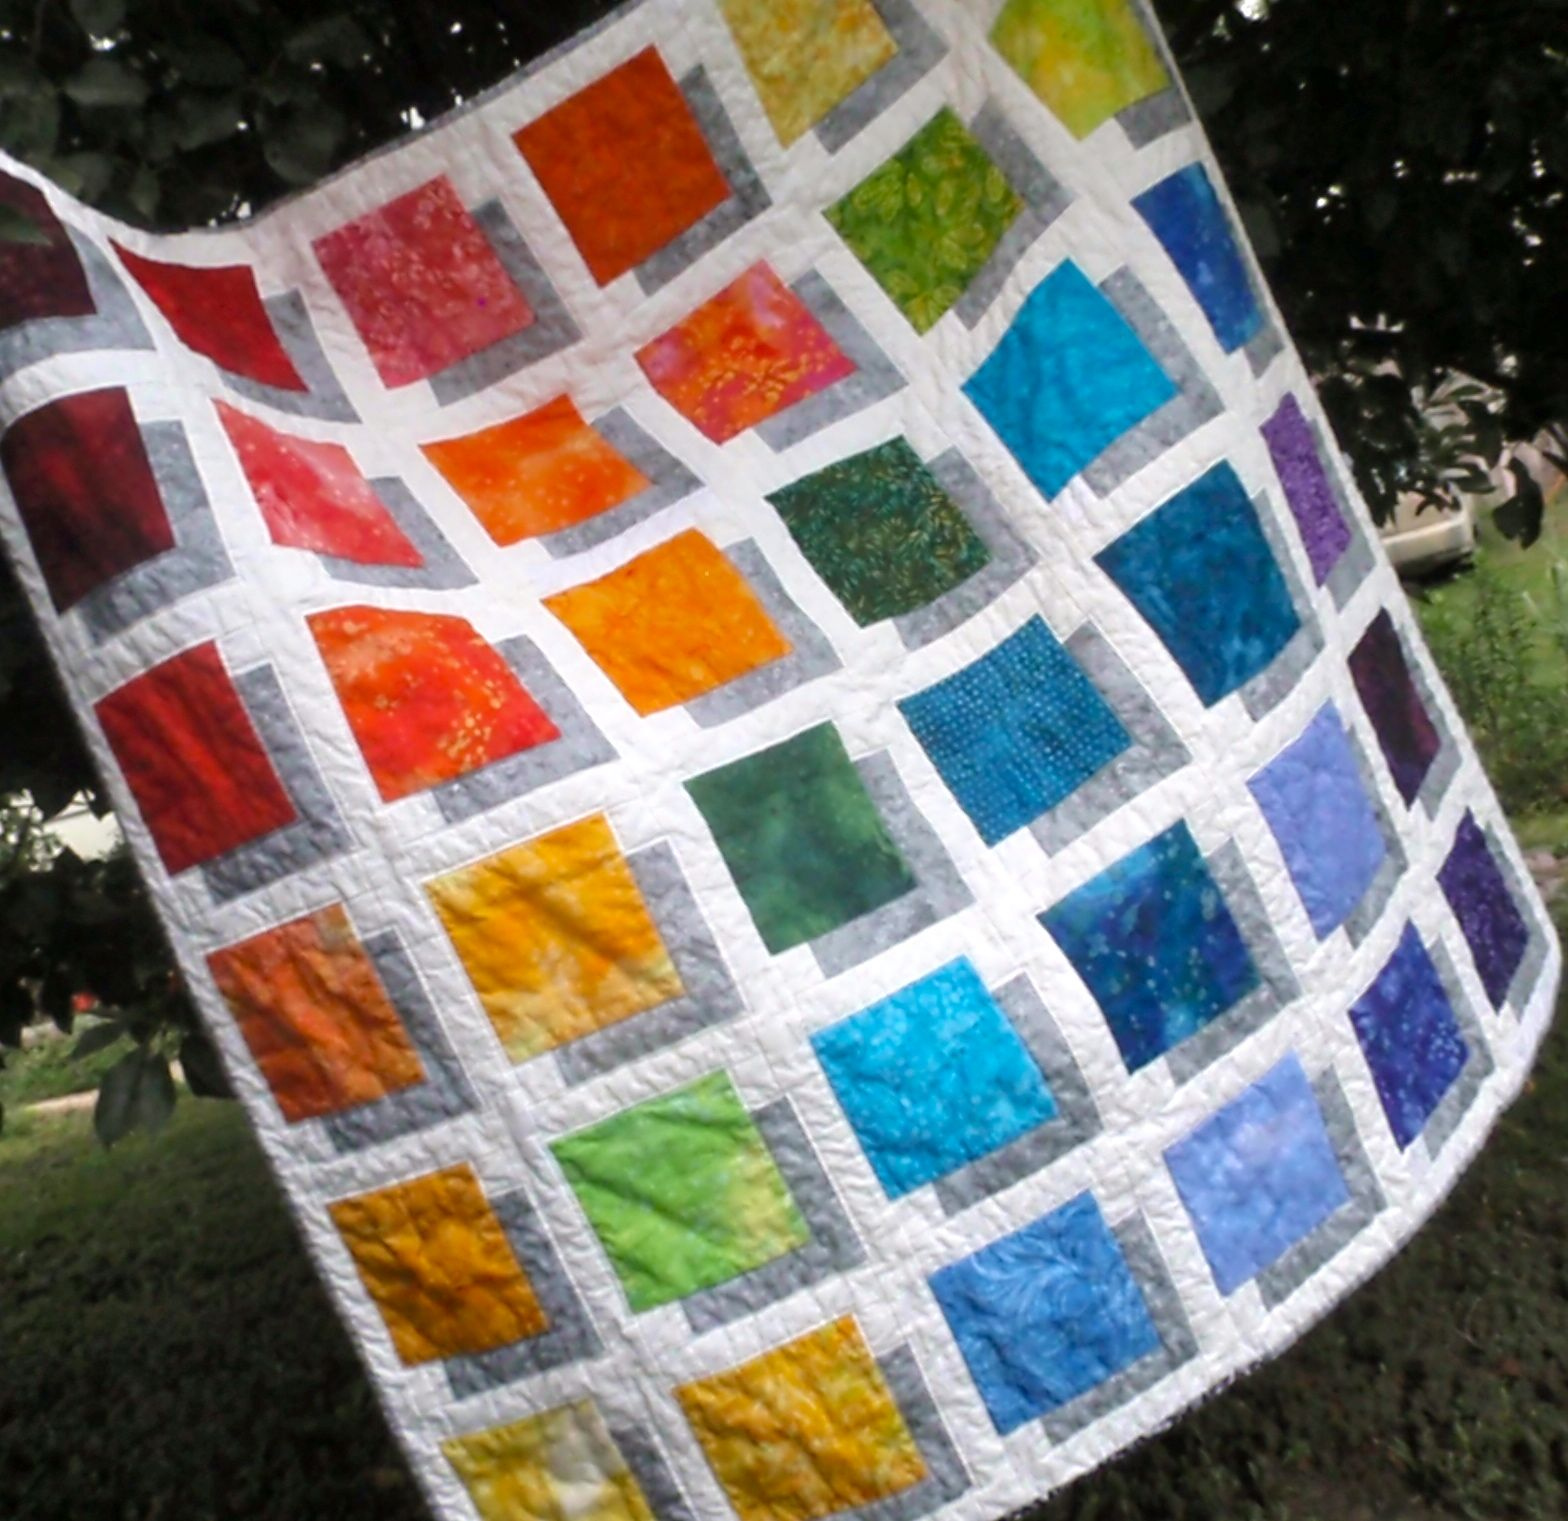 Pin By Lynda Winter Mccullough On My Finished Projects Colorful Quilts Charm Square Quilt Geometric Quilt